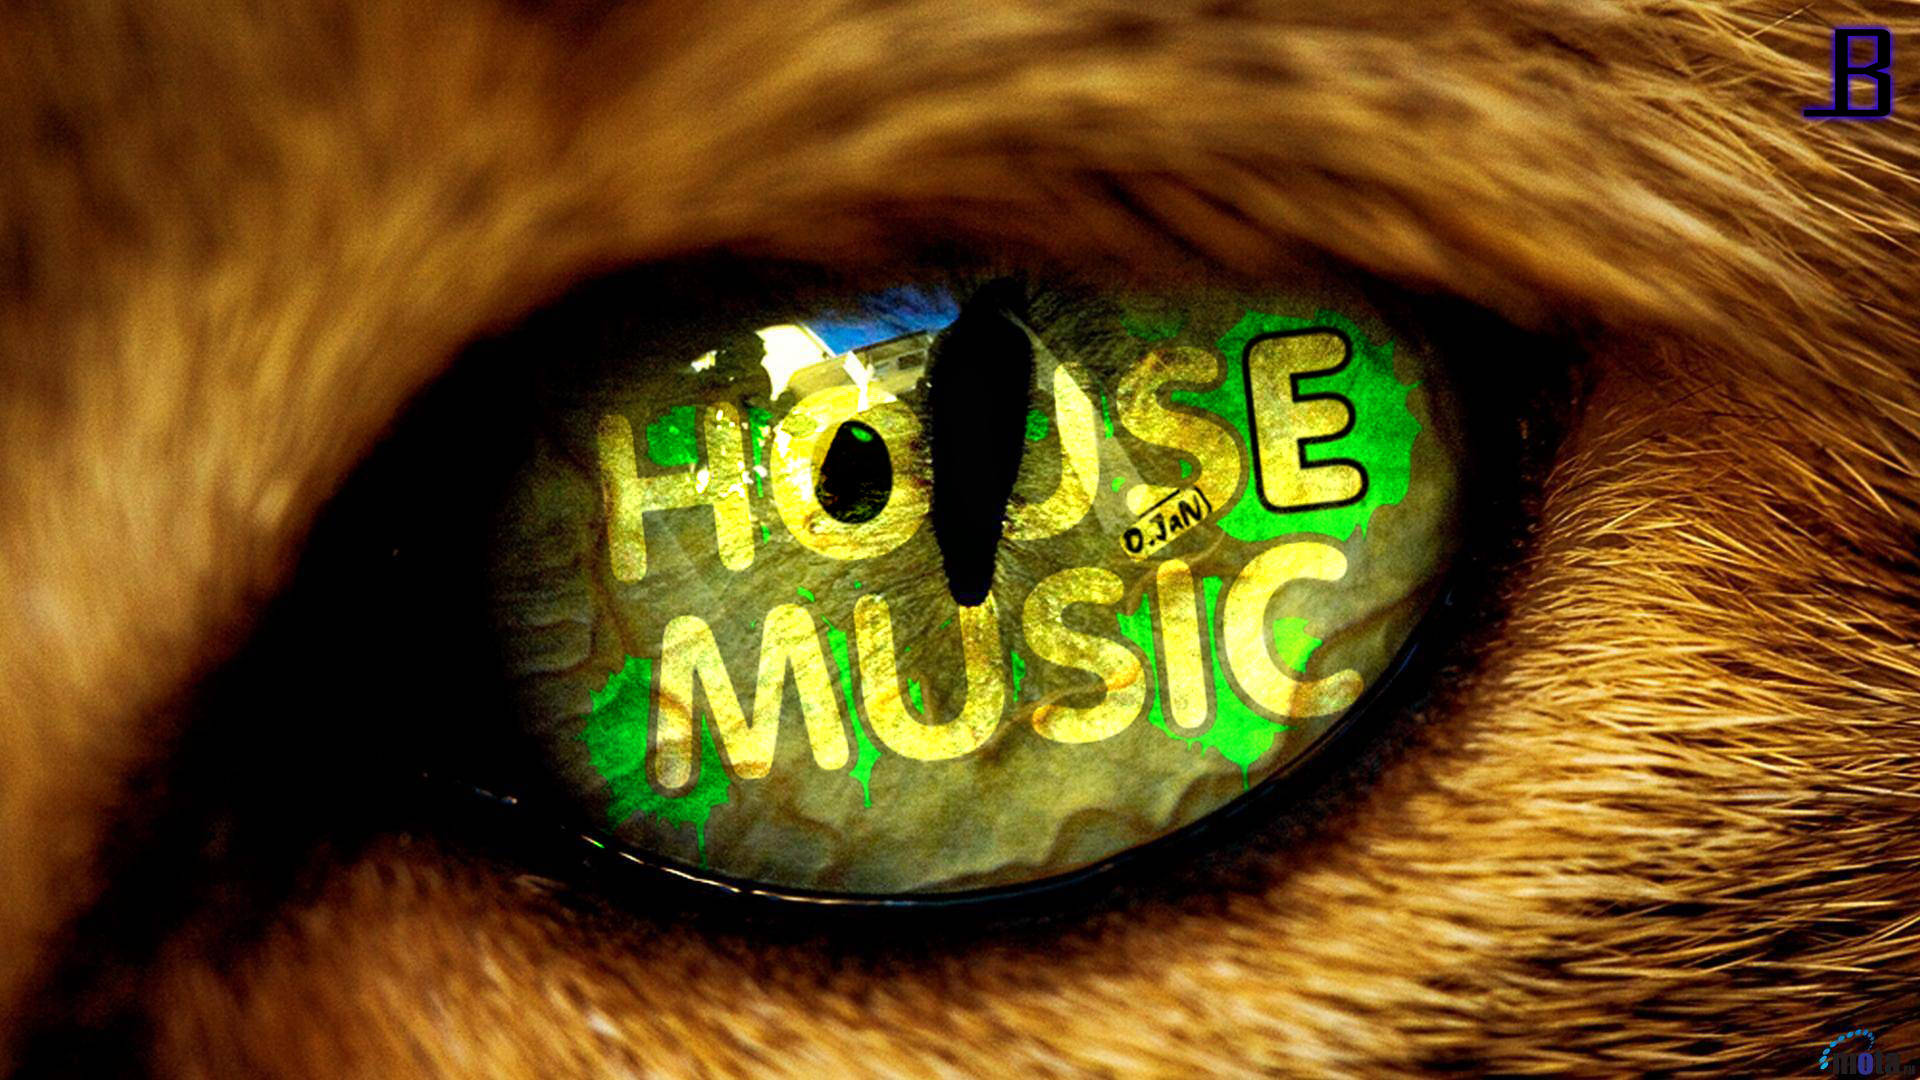 House Music wallpaper (HD) by LeadBeats on DeviantArt